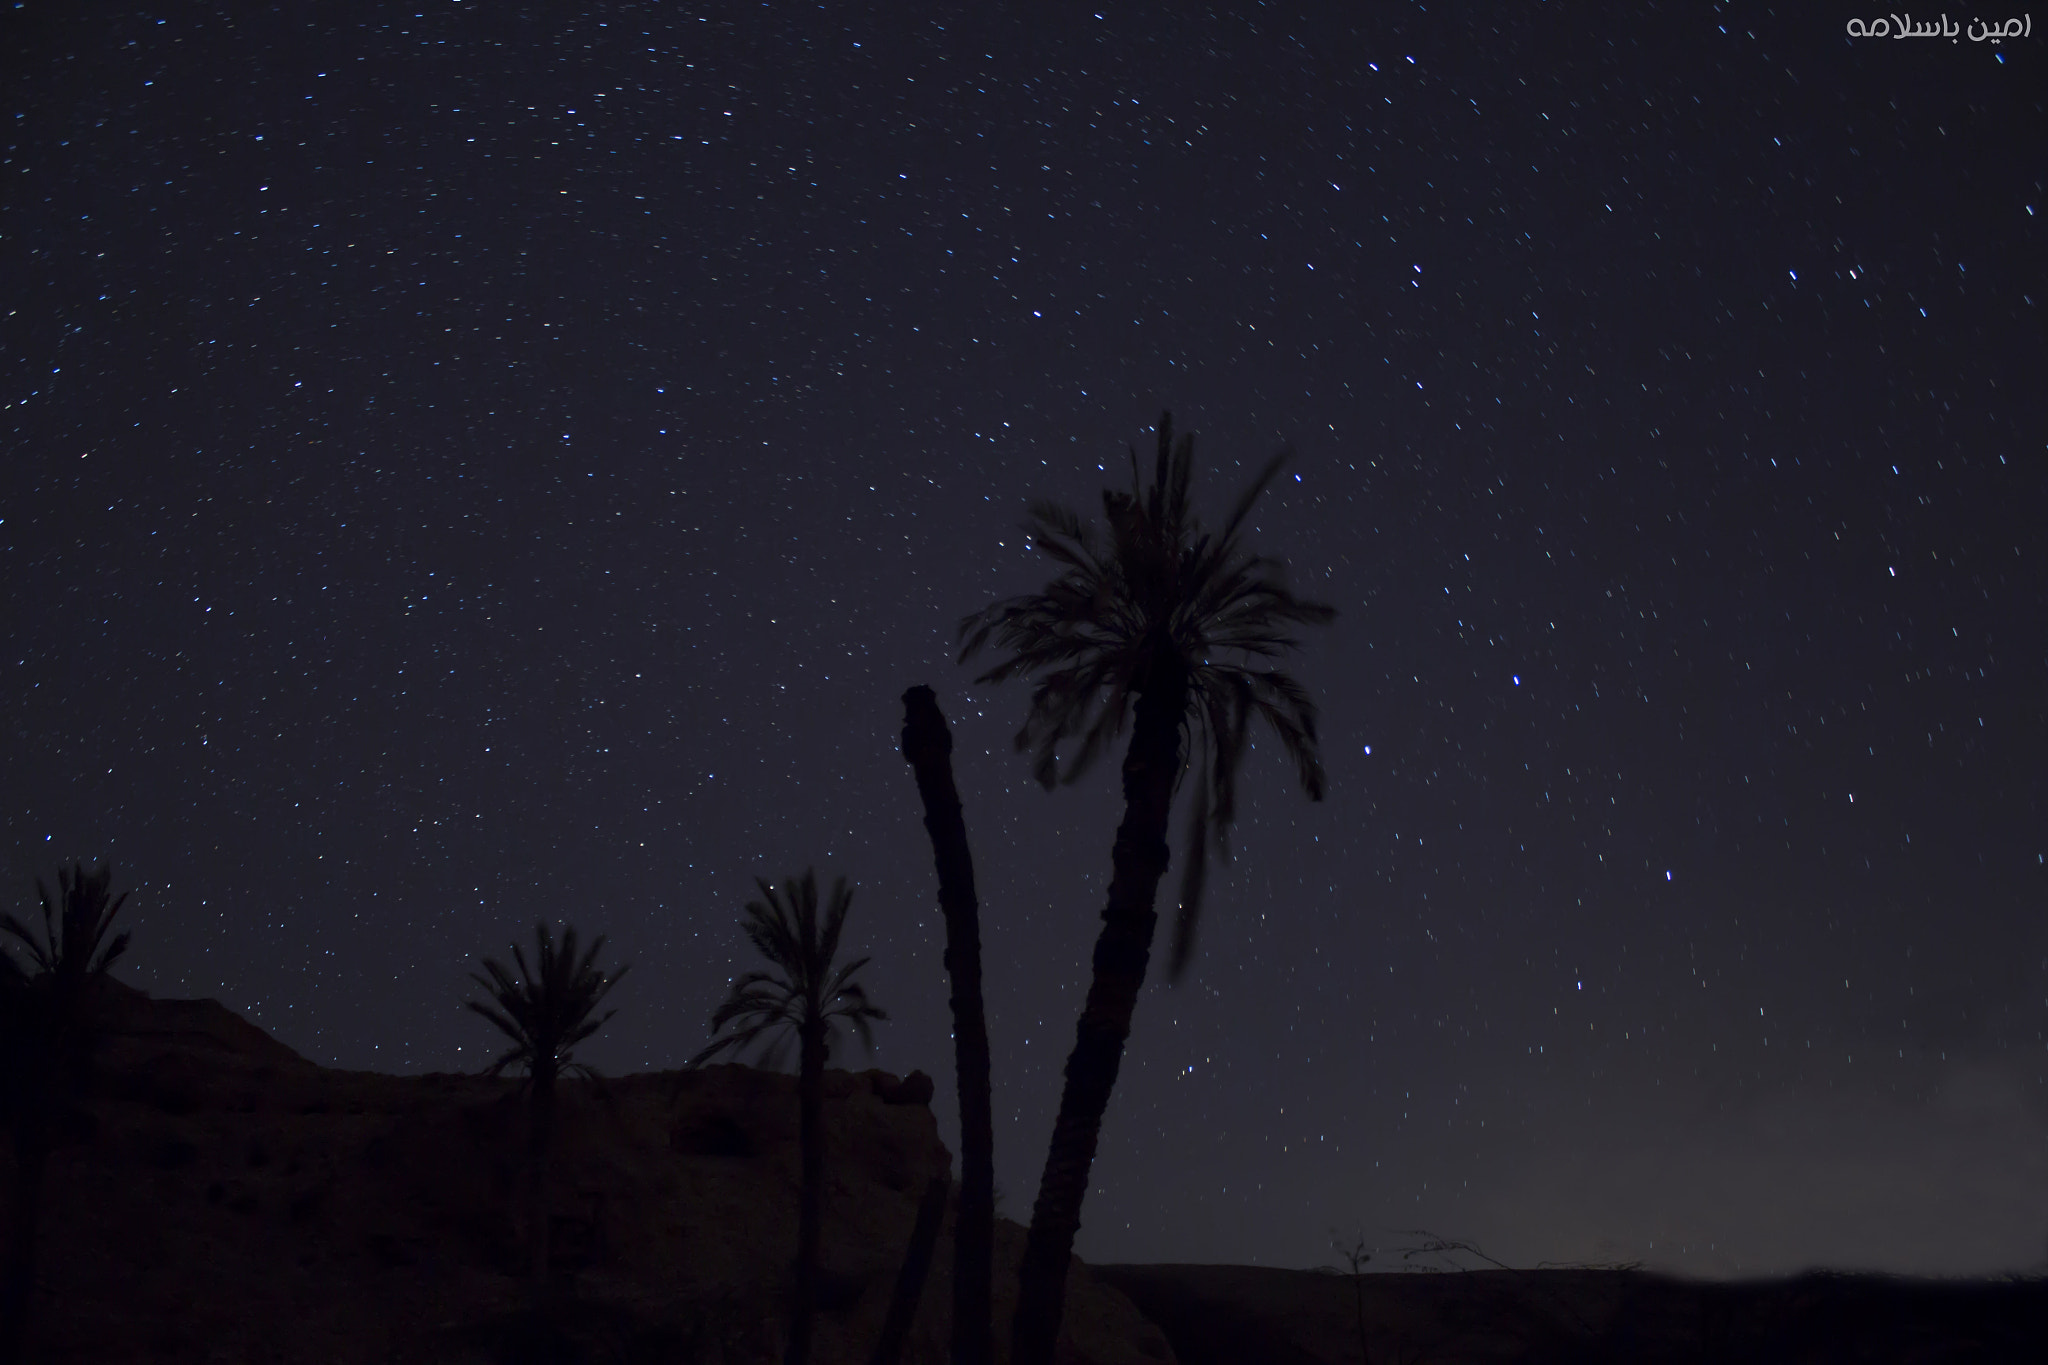 Photograph Nakhleh + stars / نخلة + نجوم by Ameen Basalamah on 500px